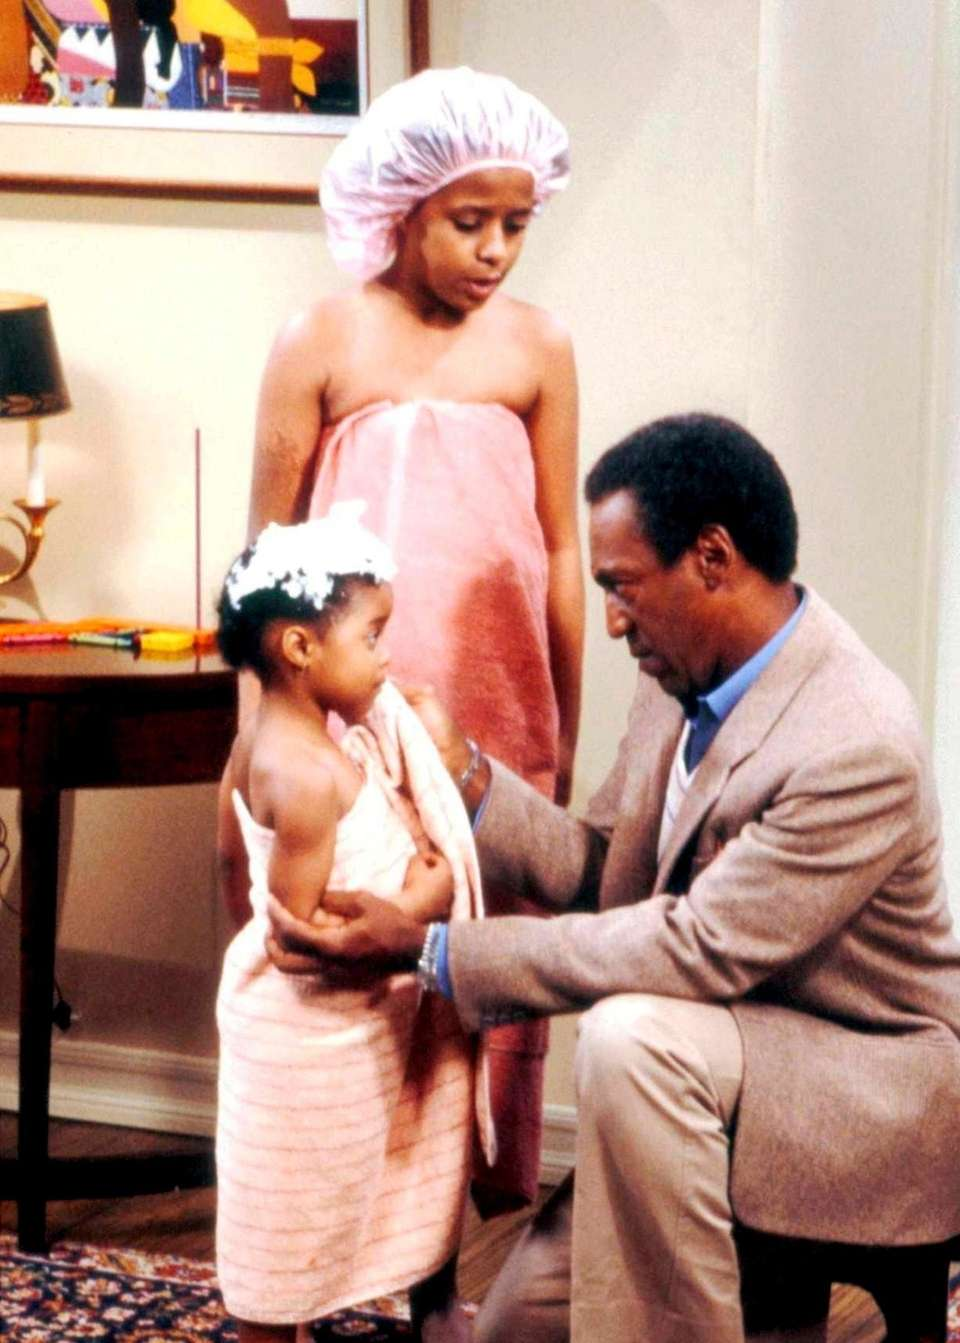 Cosby Show (1984-92) — The most popular TV